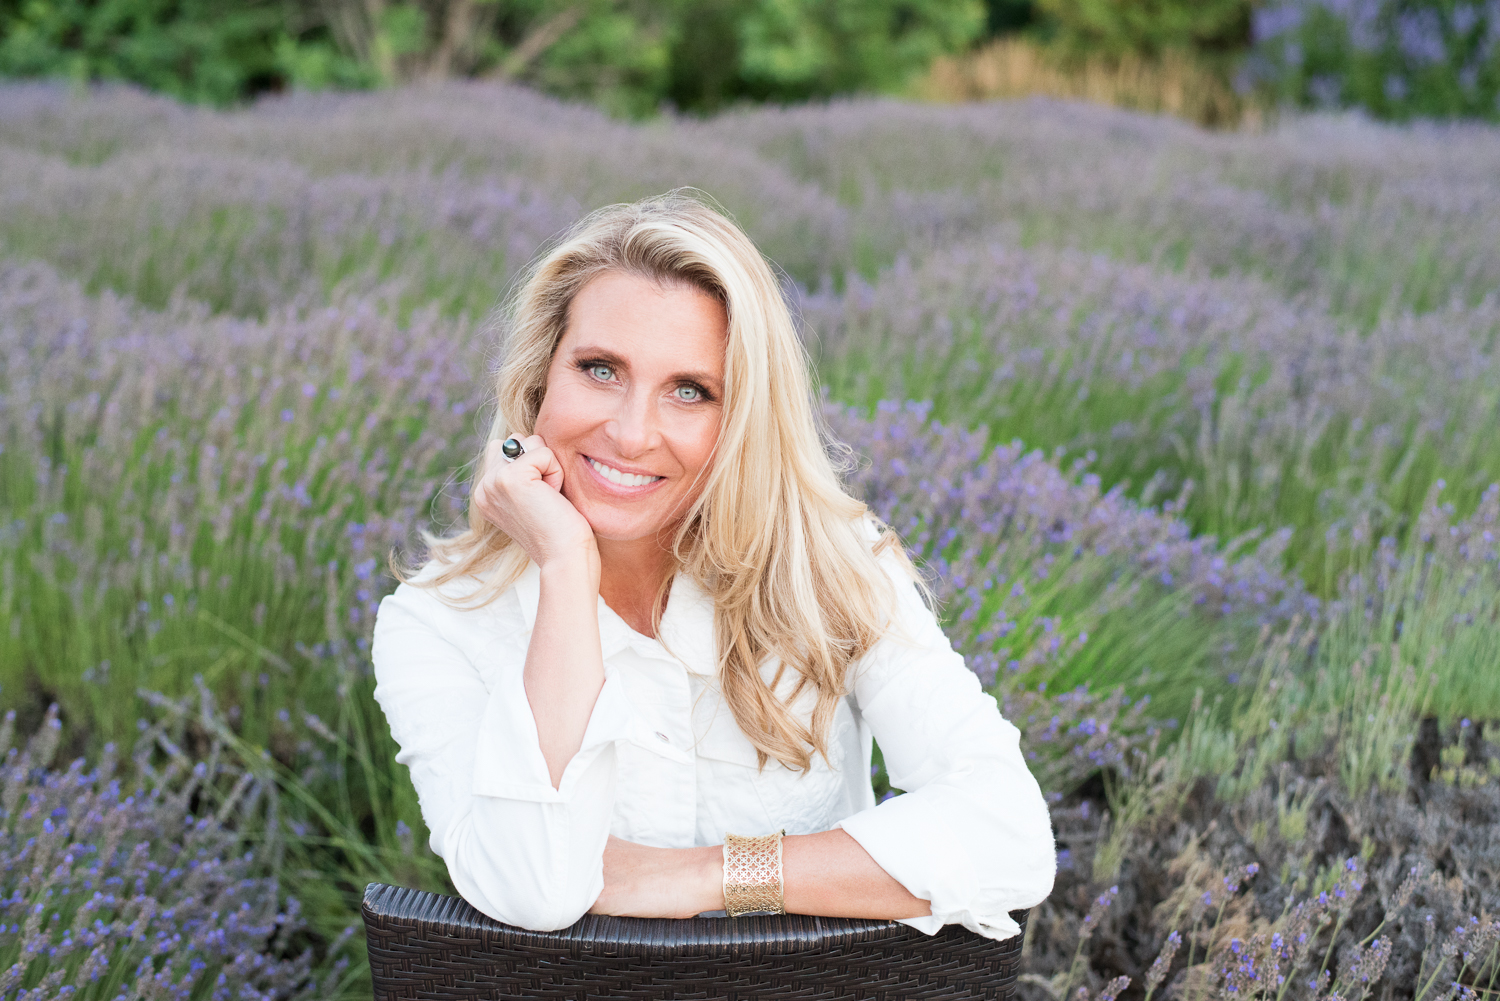 Personal Branding with a casual setting outdoors in Sonoma County, CA